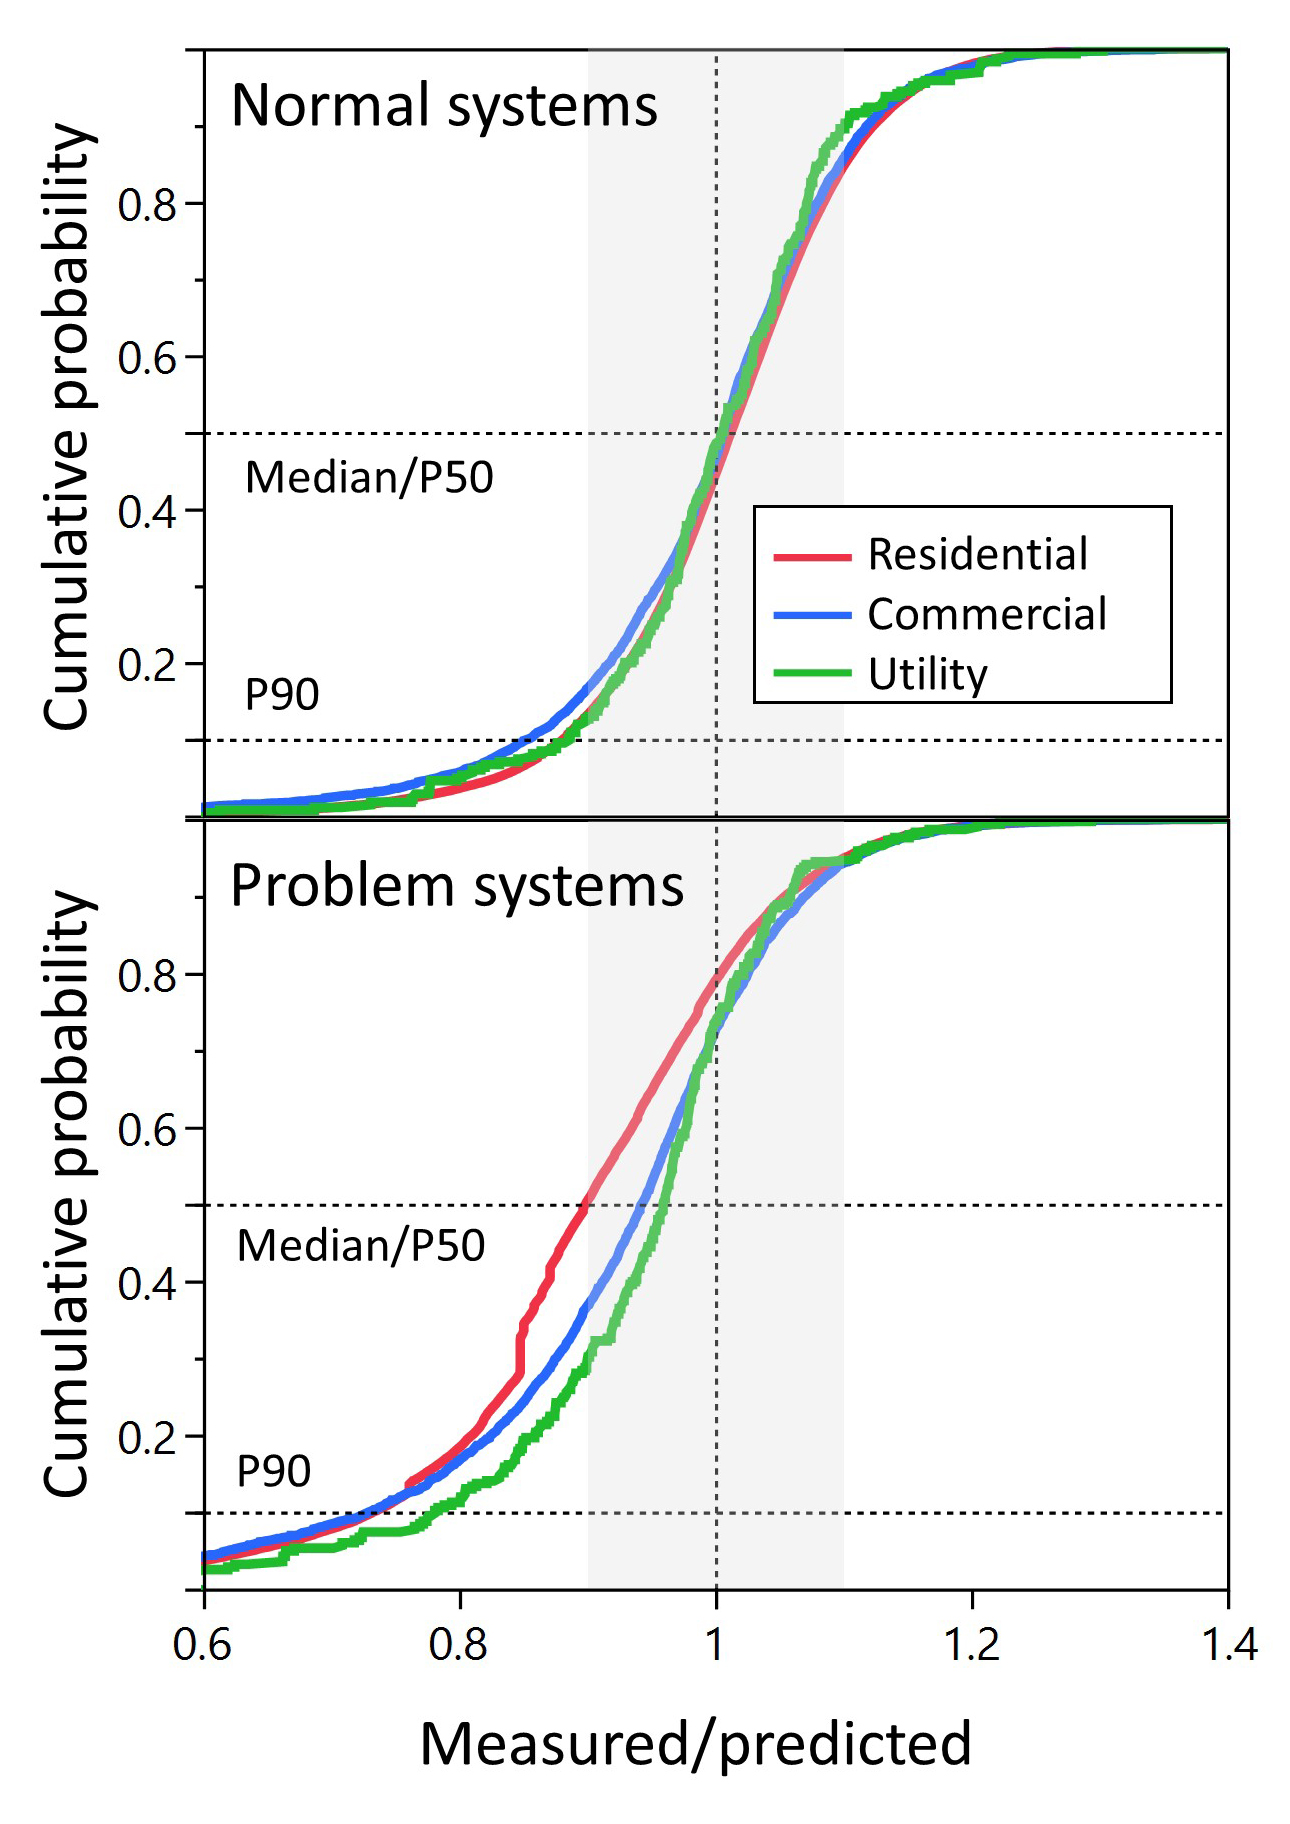 Figure 1. Cumulative distribution function of the five-year mean of the measured/predicted production ratio for normal systems not impacted by specific performance issues (top), and systems impacted by specific issues (bottom) discussed in the following sections. Different system sizes are indicated by different colour; the median (P50), the P90, and the unity ratio are indicated by dashed horizontal and vertical lines, respectively. A 10% band around the unity values is indicated in grey